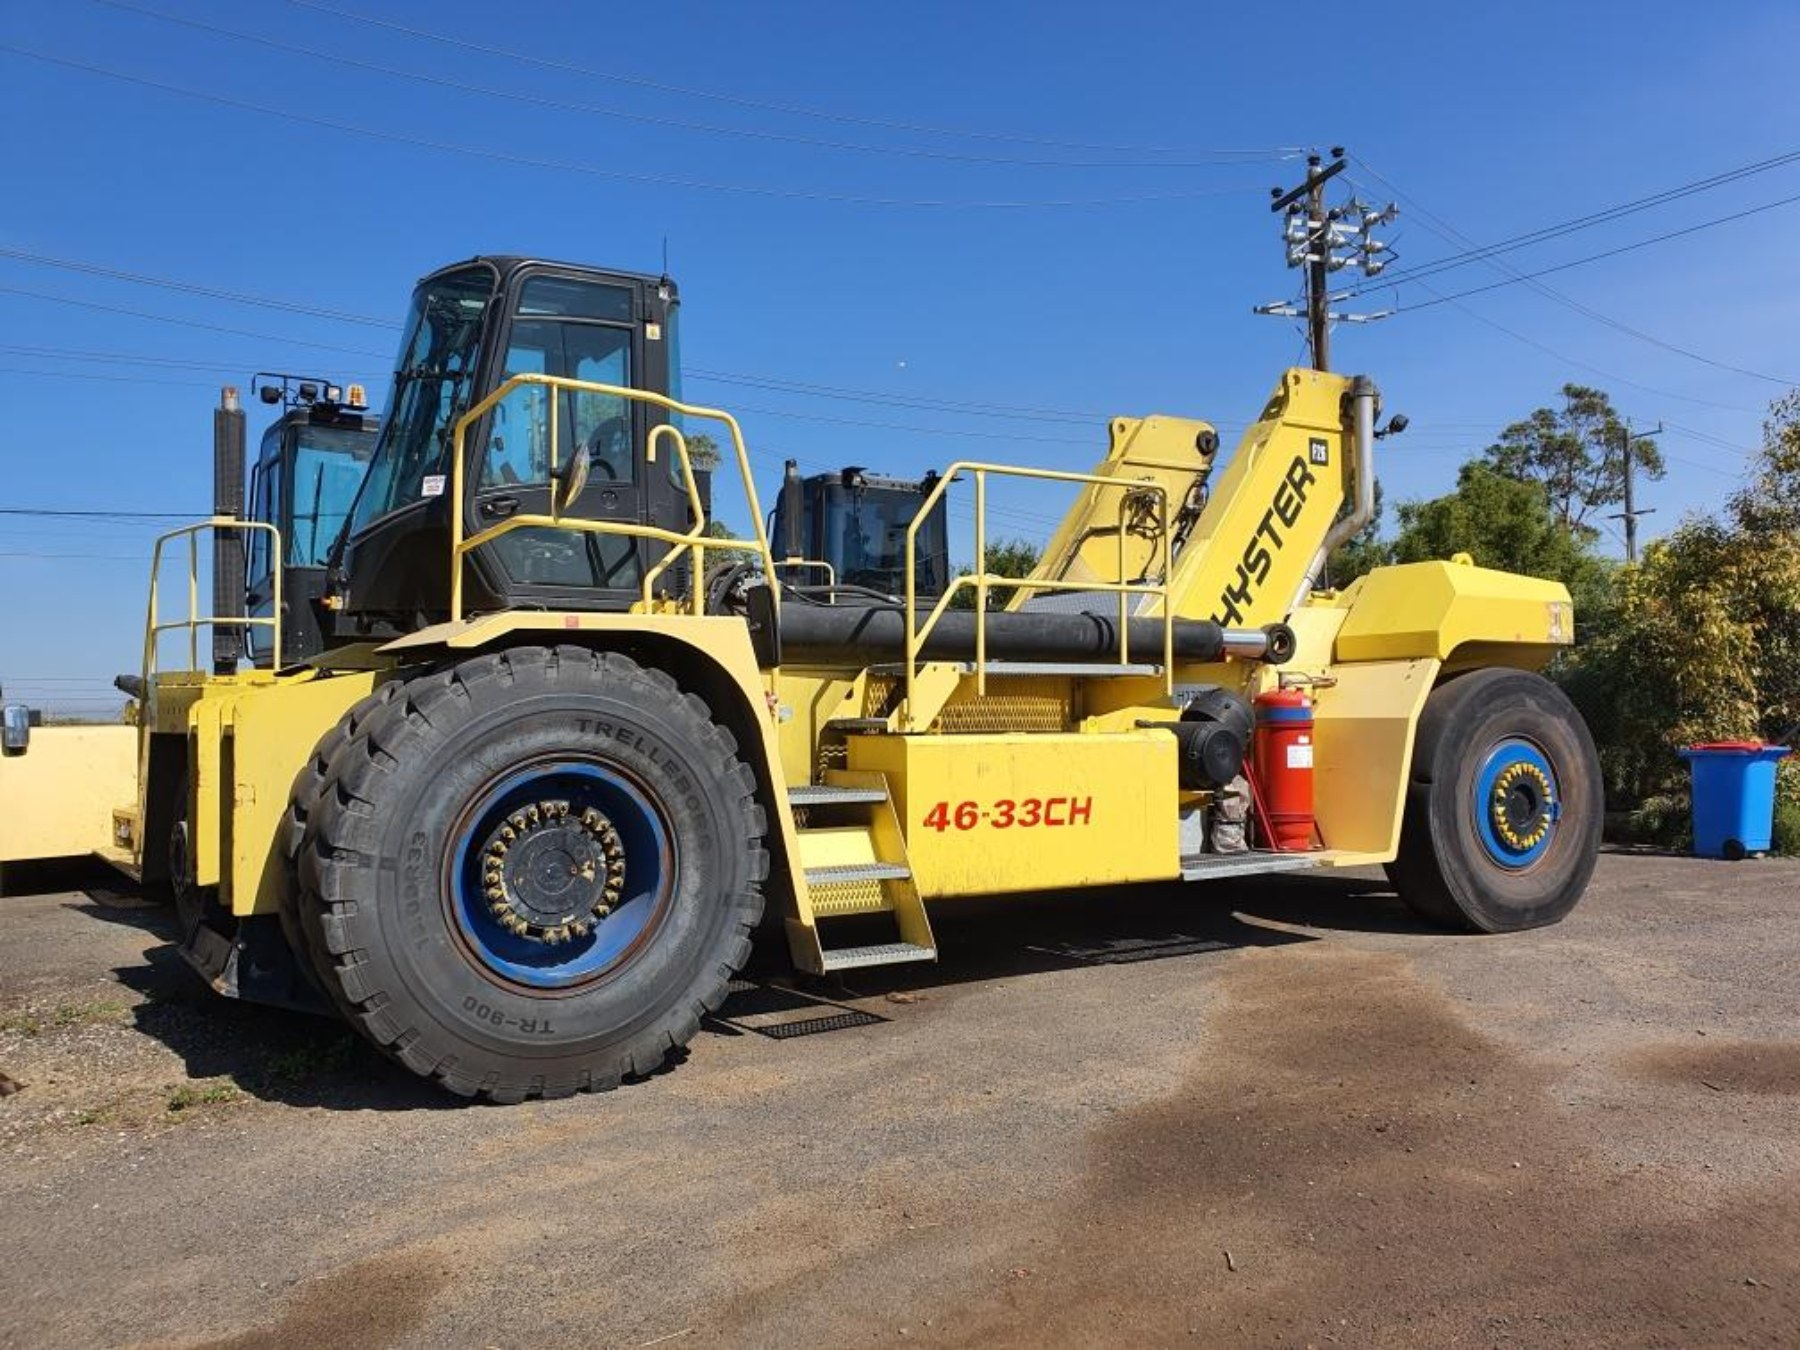 Used forklift: HYSTER RS46-41LSCH